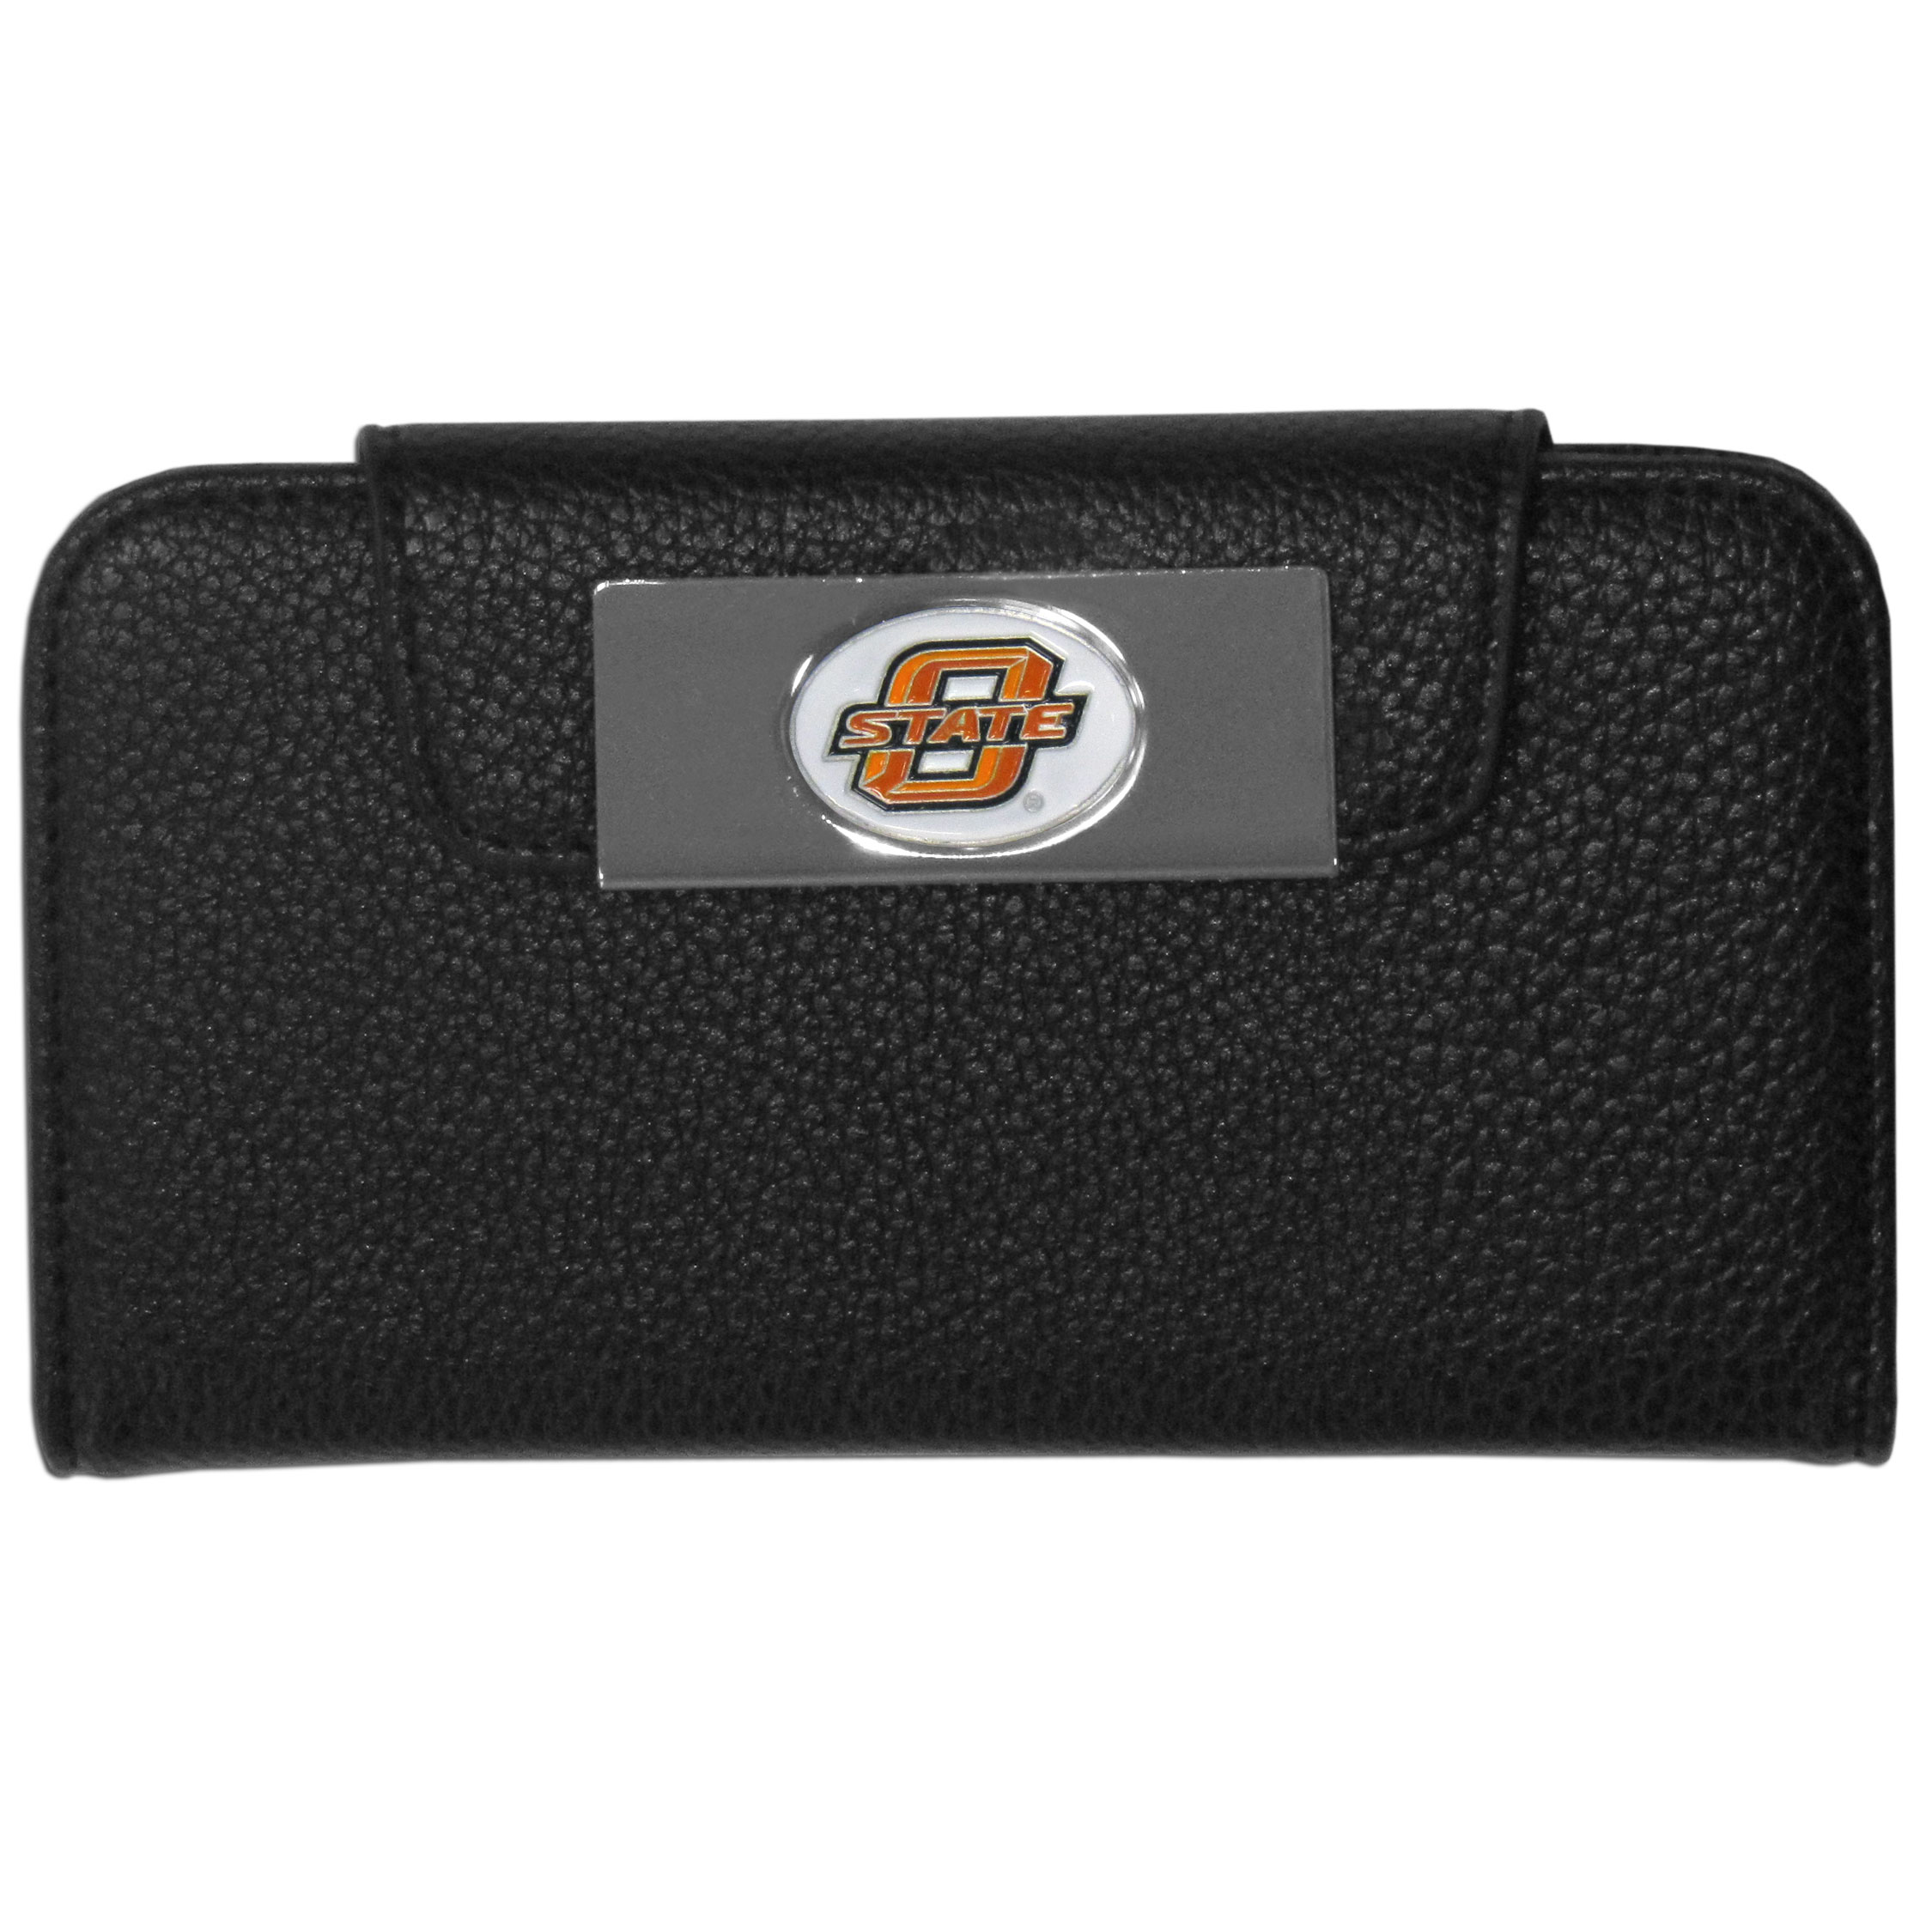 Oklahoma State Cowboys Samsung Galaxy S4 Wallet Case - This new & wildly popular case is ideal for those who like to travel light! The stylish case has an inner hard shell that securely holds your phone while allowing complete access to the phone's functionality. The flip cover has slots for credit cards, business cards and identification. The magnetic flip cover has a metal Oklahoma State Cowboys emblem on a high polish chrome backing. Fits the Samsung Galaxy S4